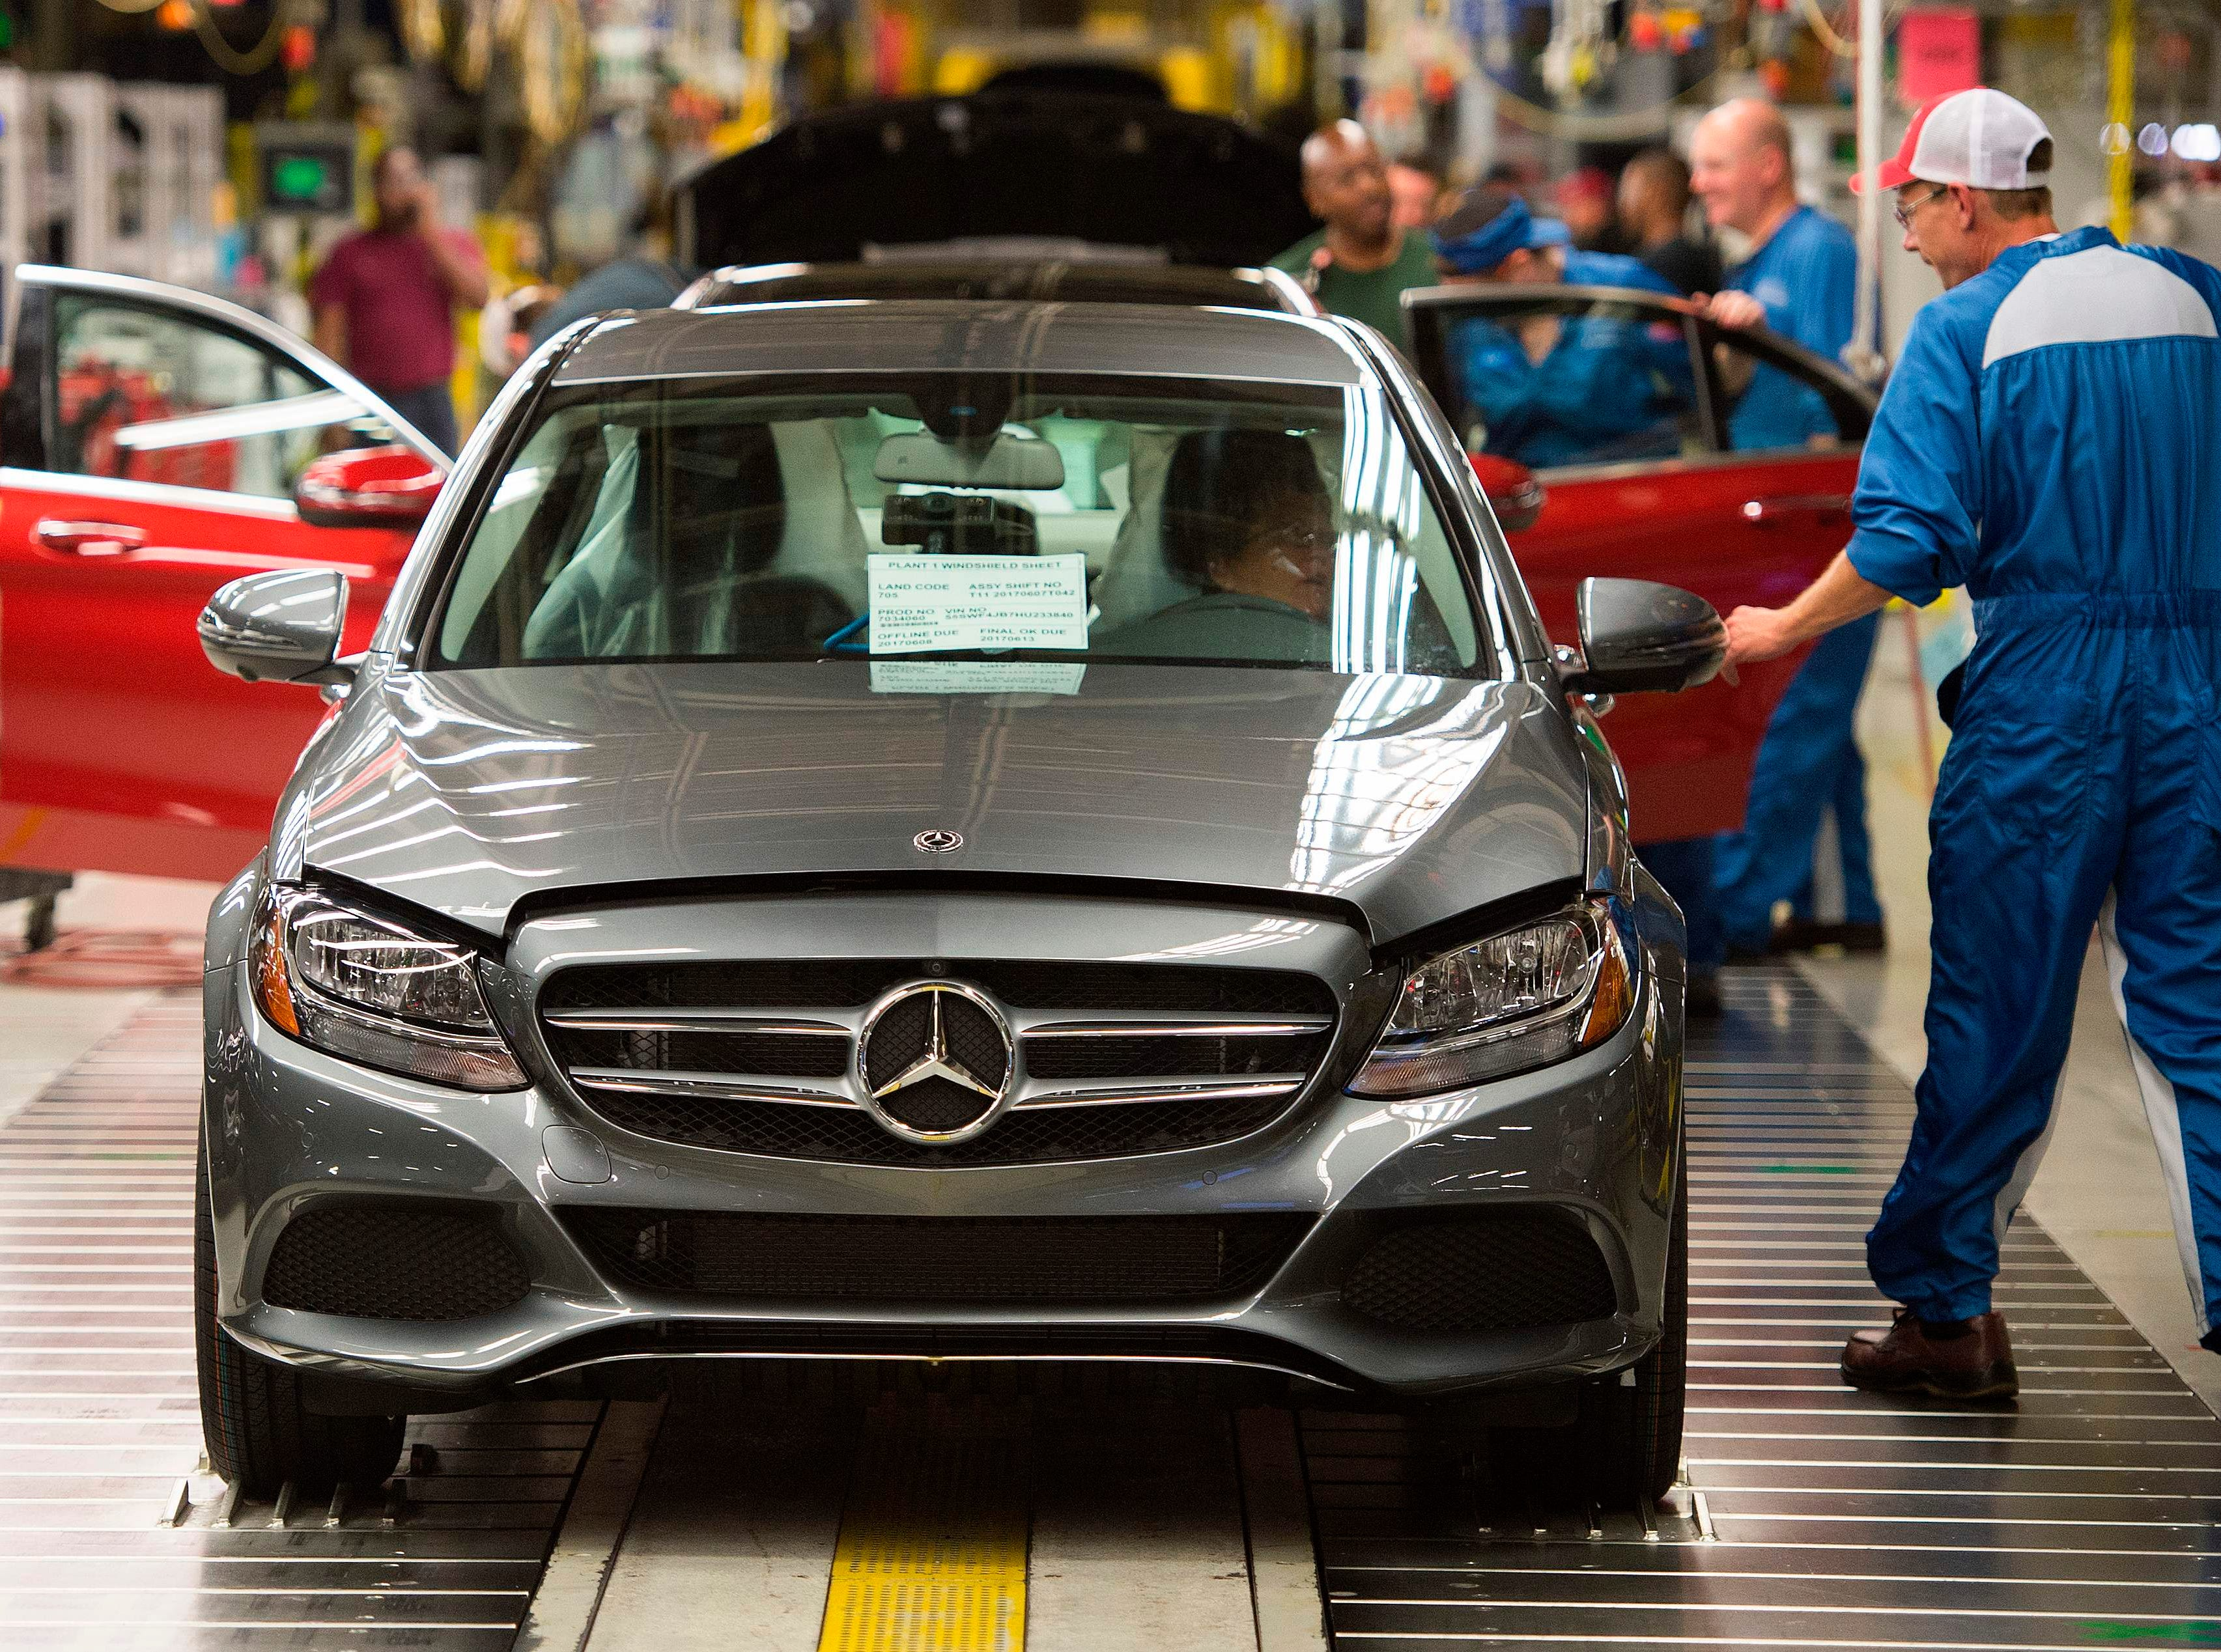 Tariff uncertainty could hurt auto industry more than plant closures in 2019